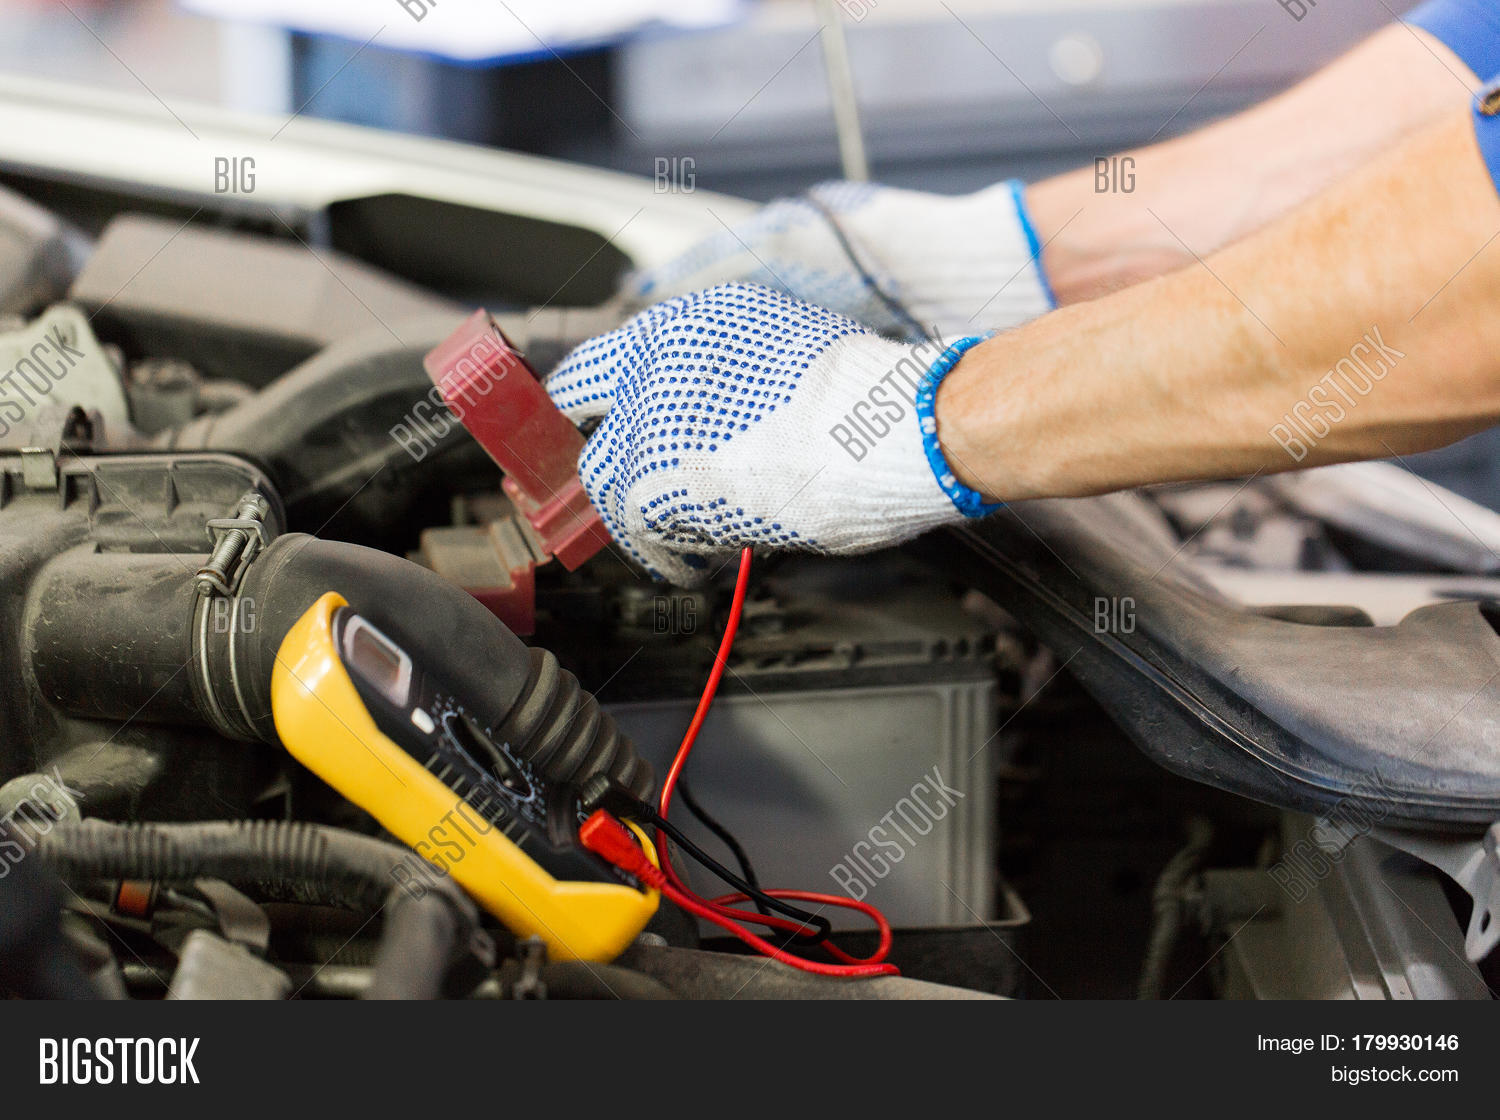 Car Service Repair Image Photo Free Trial Bigstock Multimeter Wiring Maintenance And People Concept Auto Mechanic Man With Digital